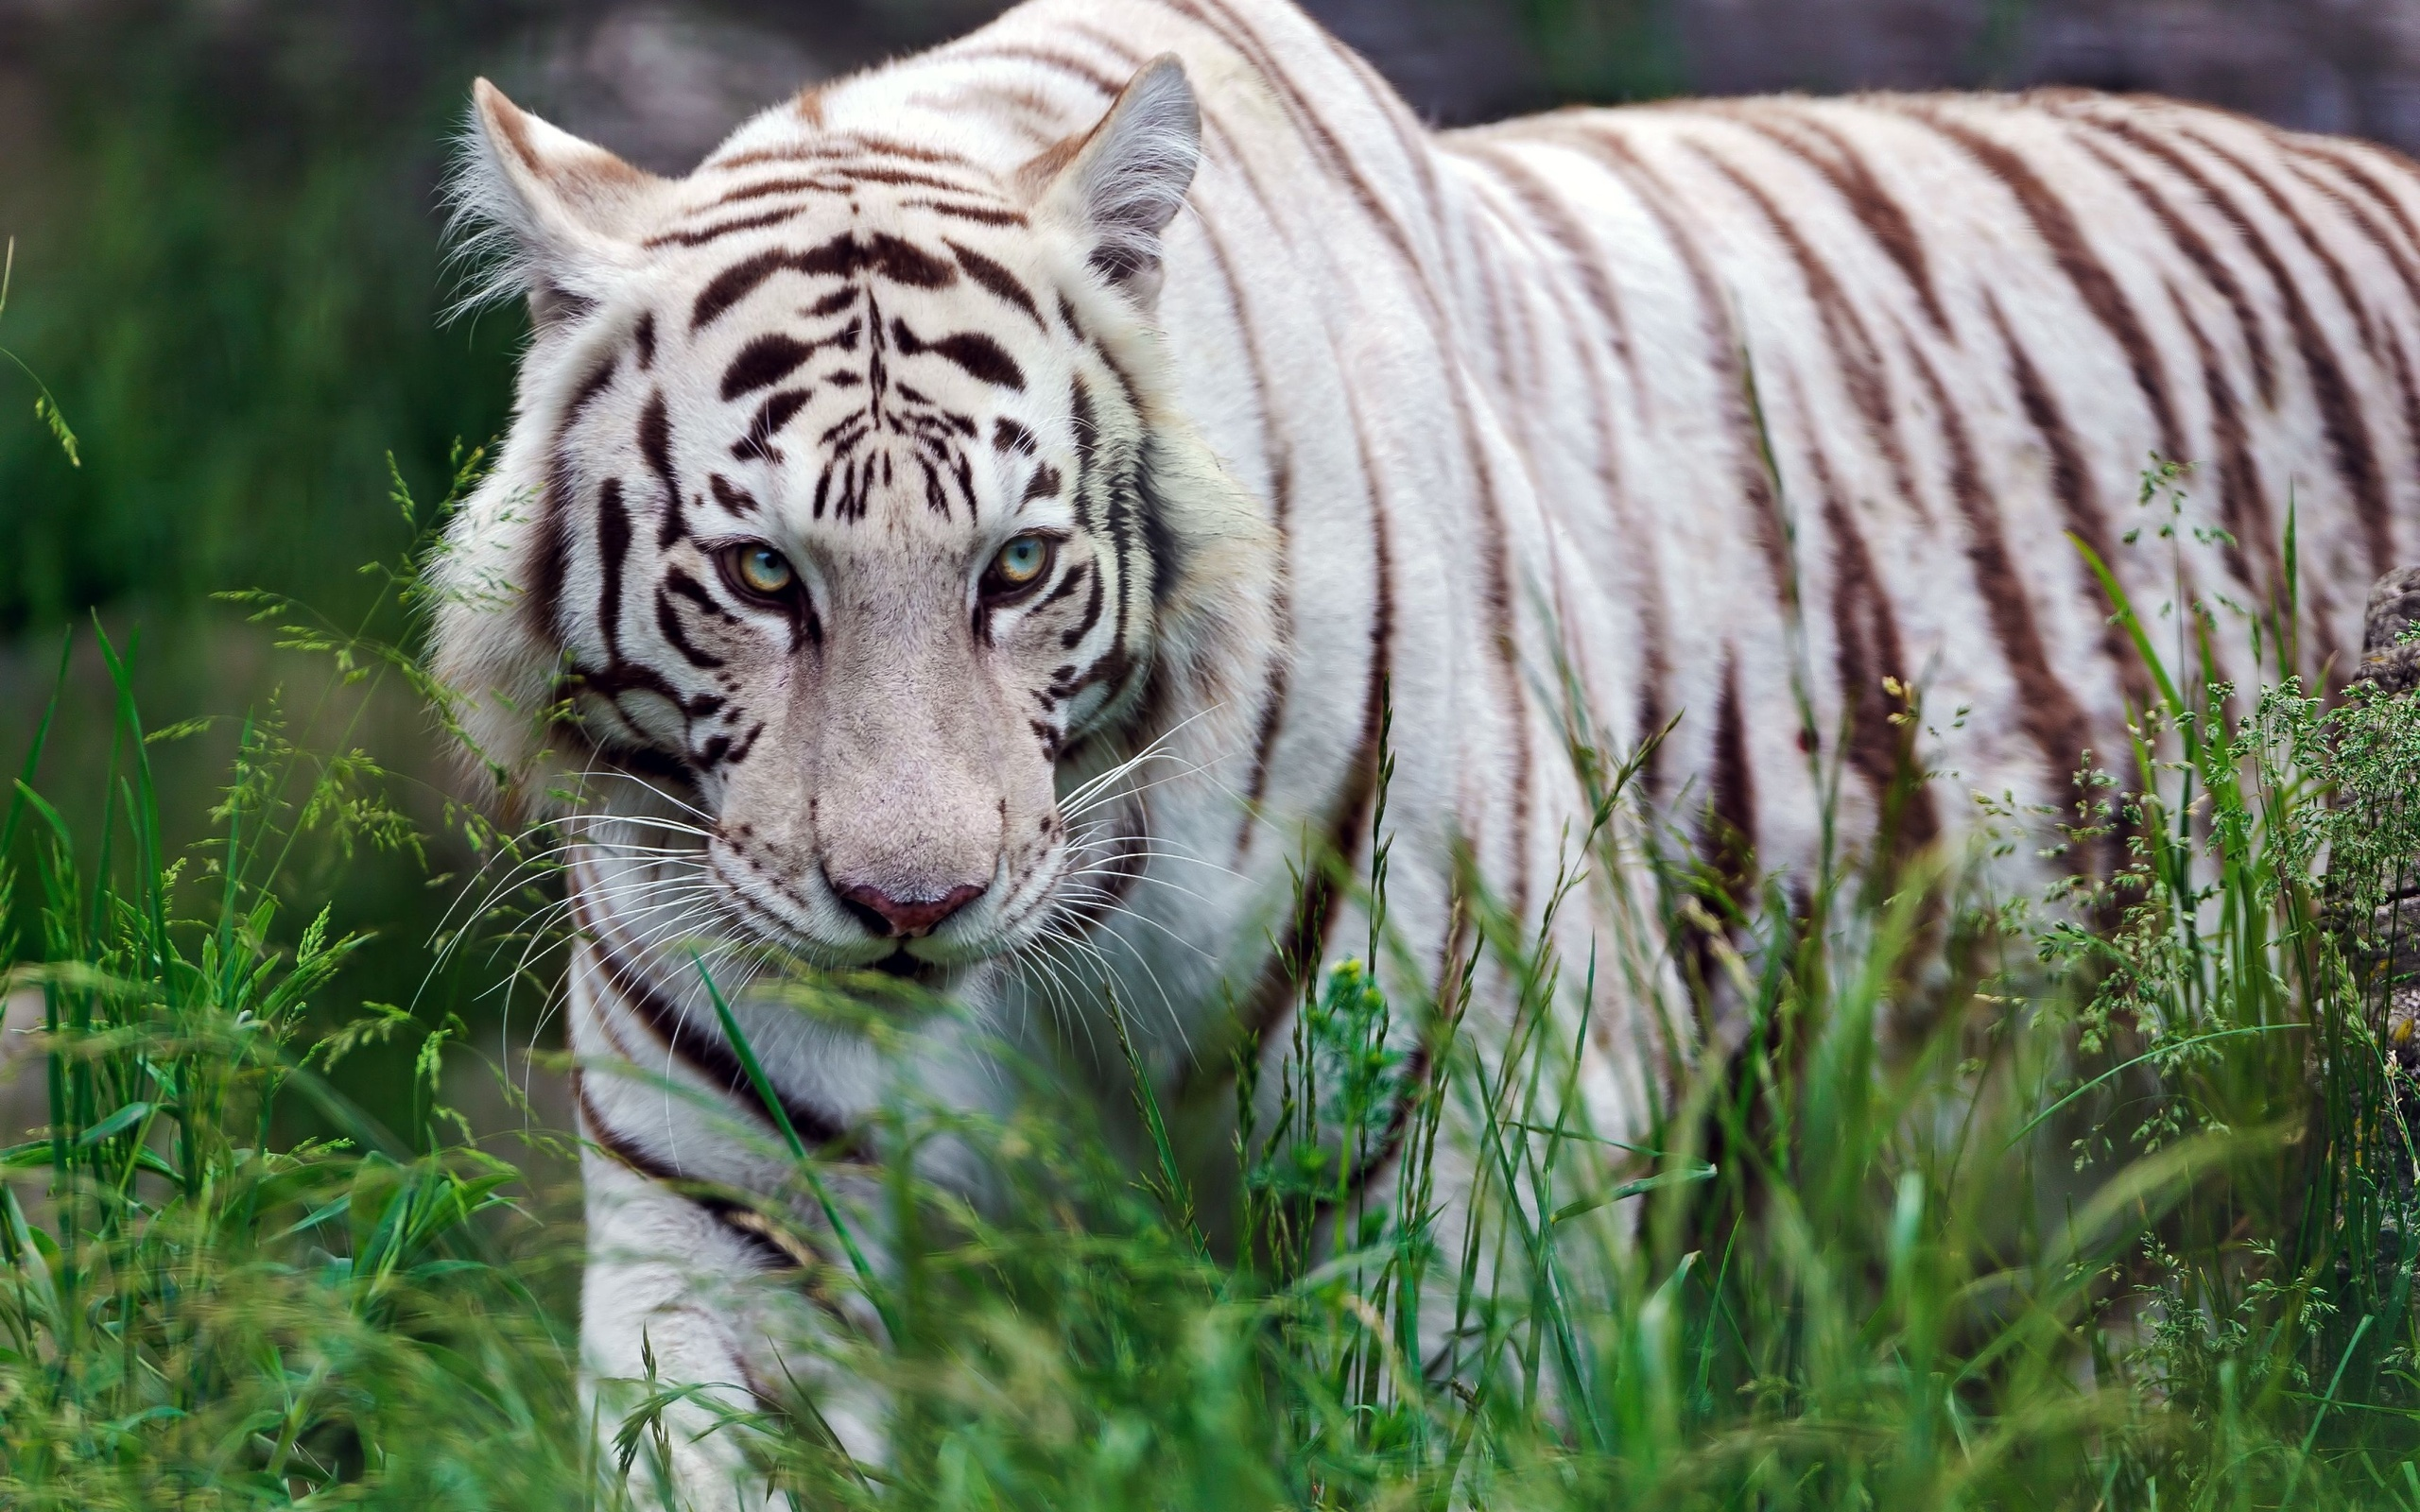 White Tigress In The Grass Wallpapers - 2560x1600 - 1441696